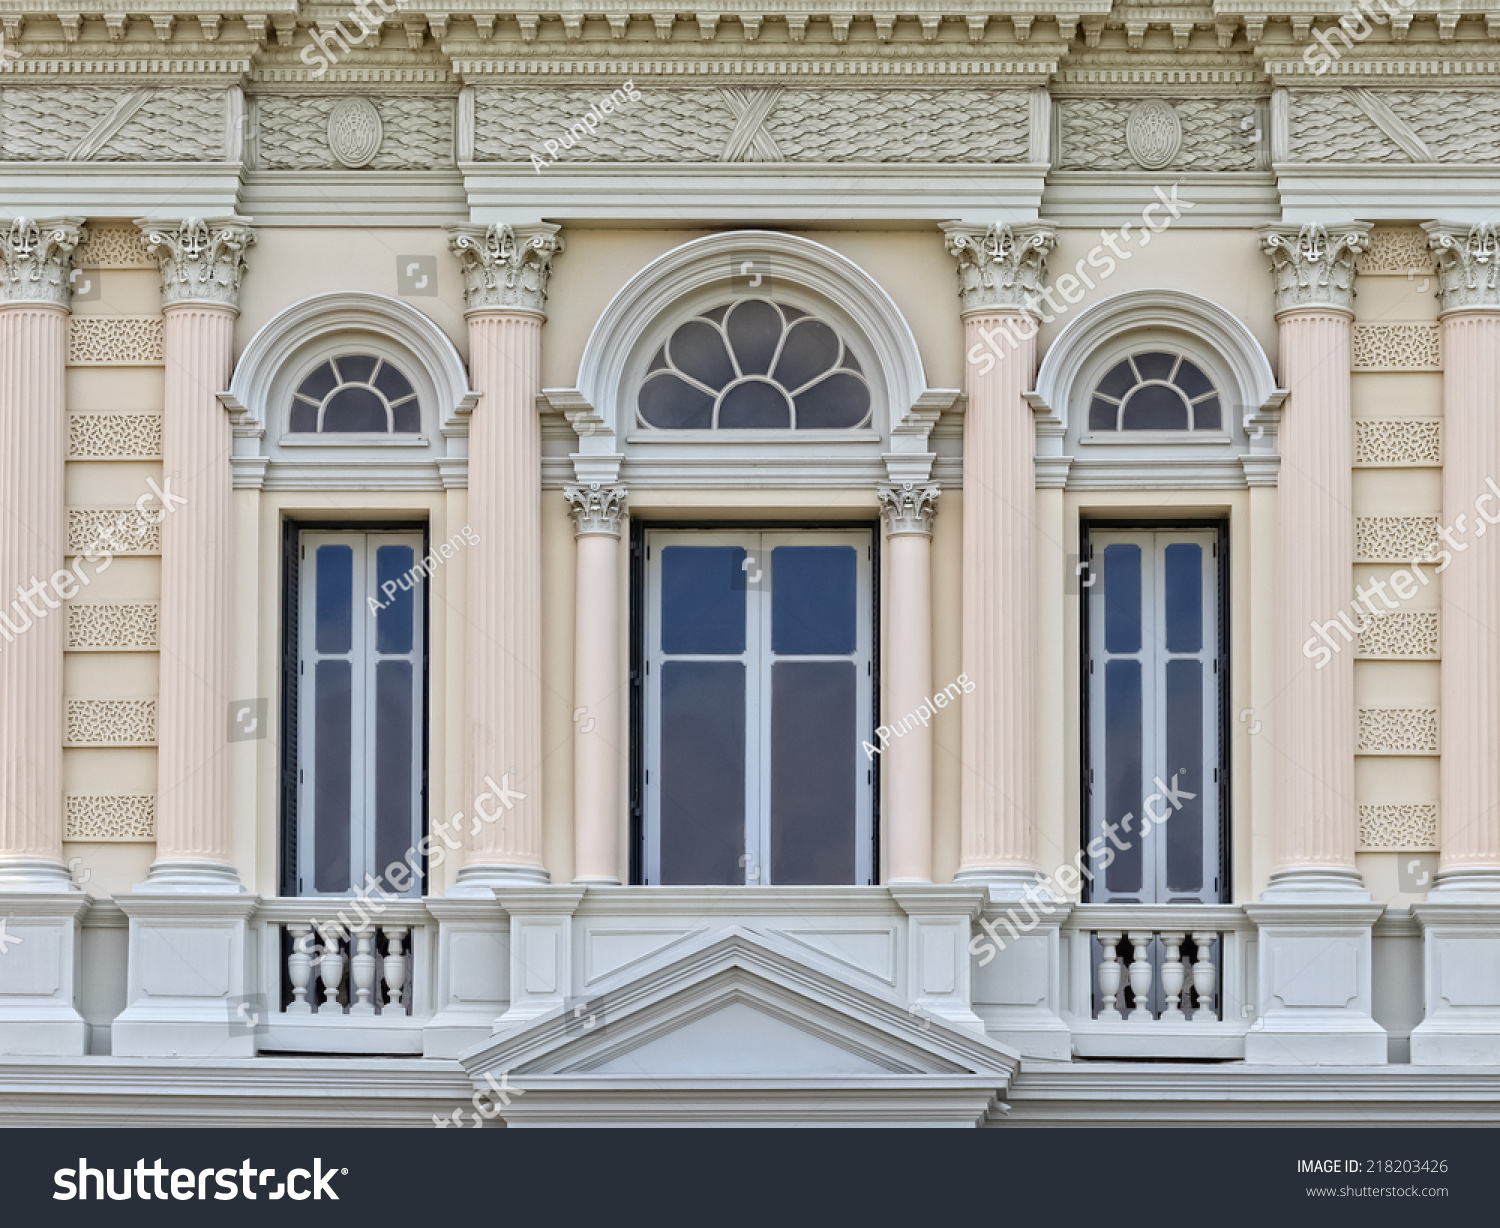 European Style Arch Window Grand Palace Stock Photo